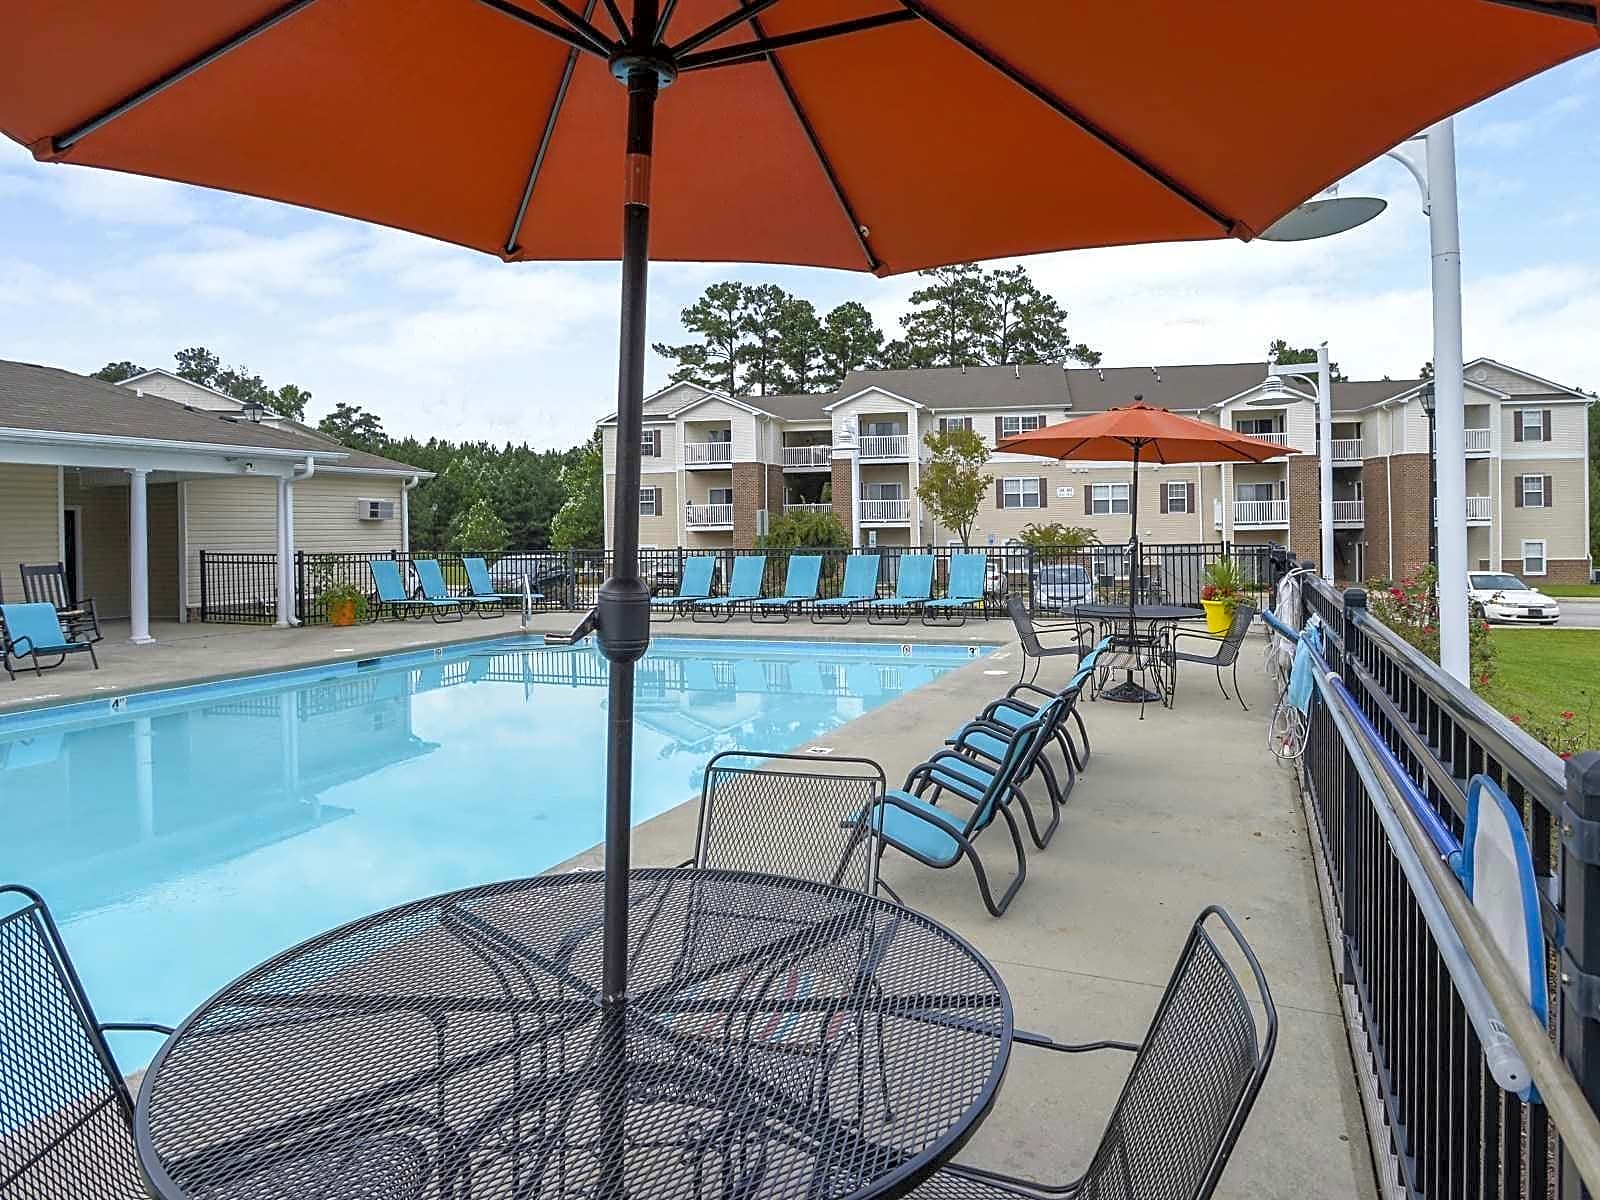 Apartments Near Fayetteville Autumn View for Fayetteville Students in Fayetteville, NC